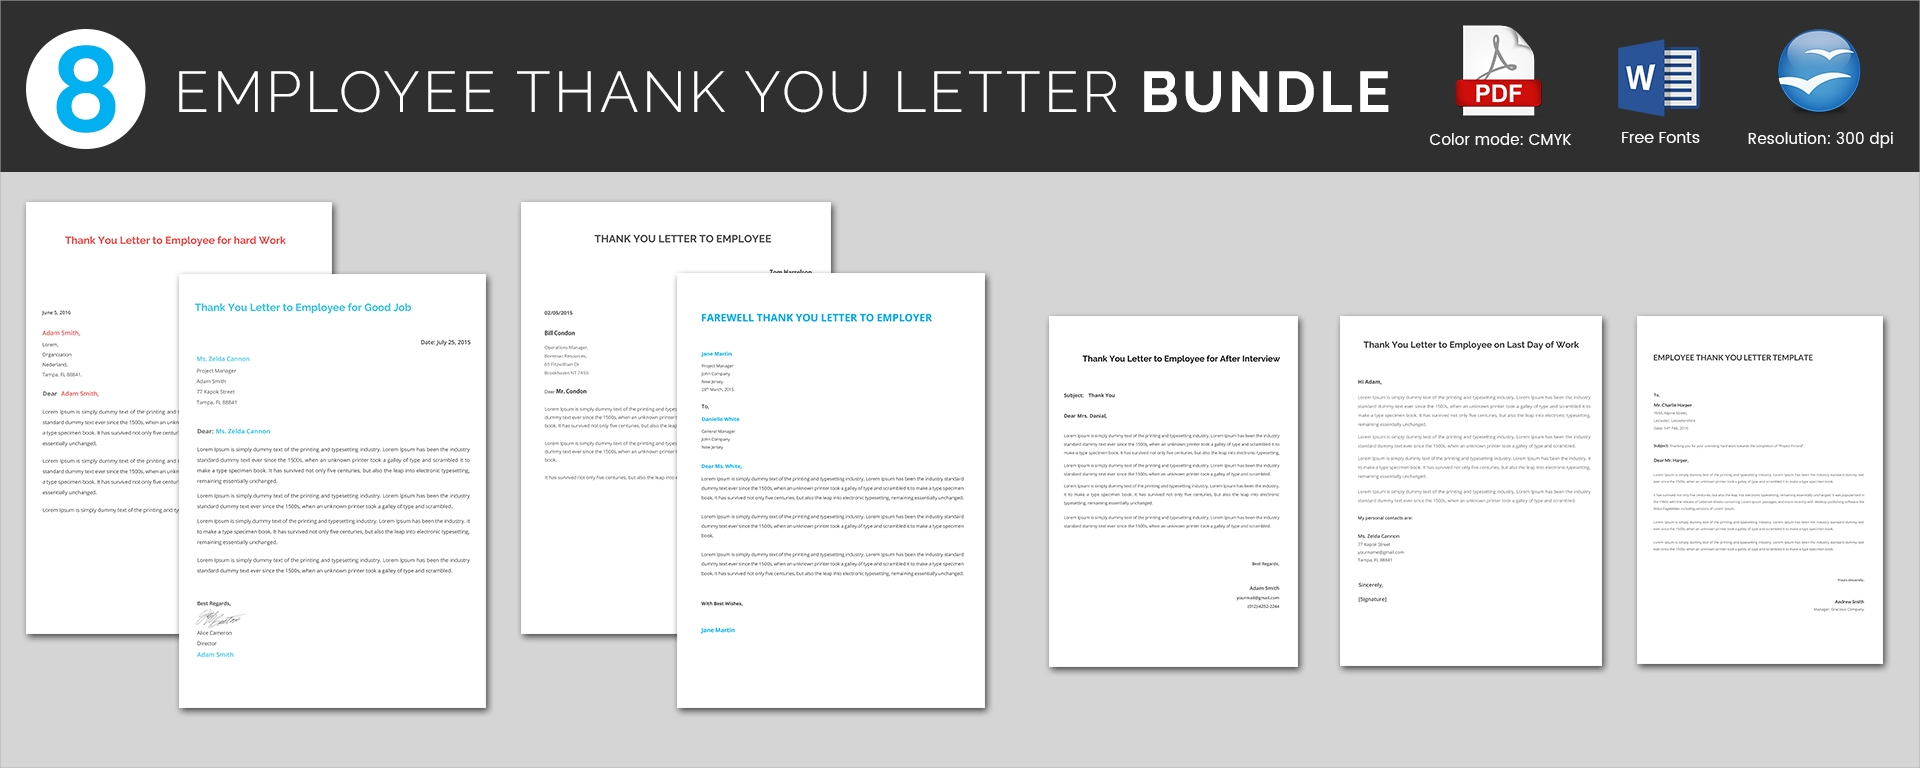 employee thank you letter bundle